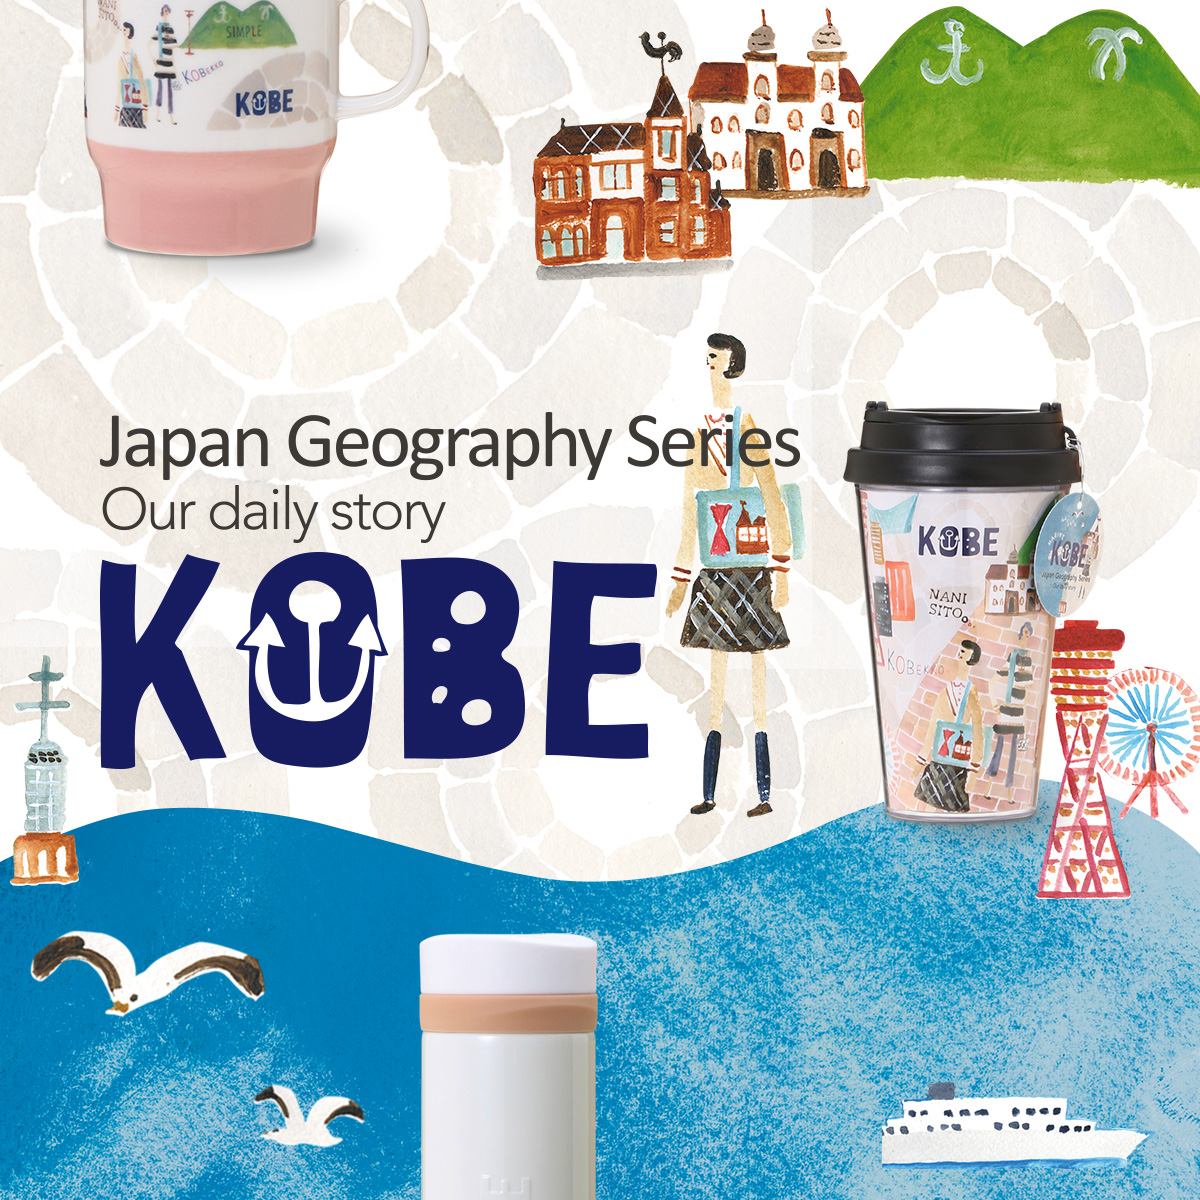 Japan Geography Series 神戸